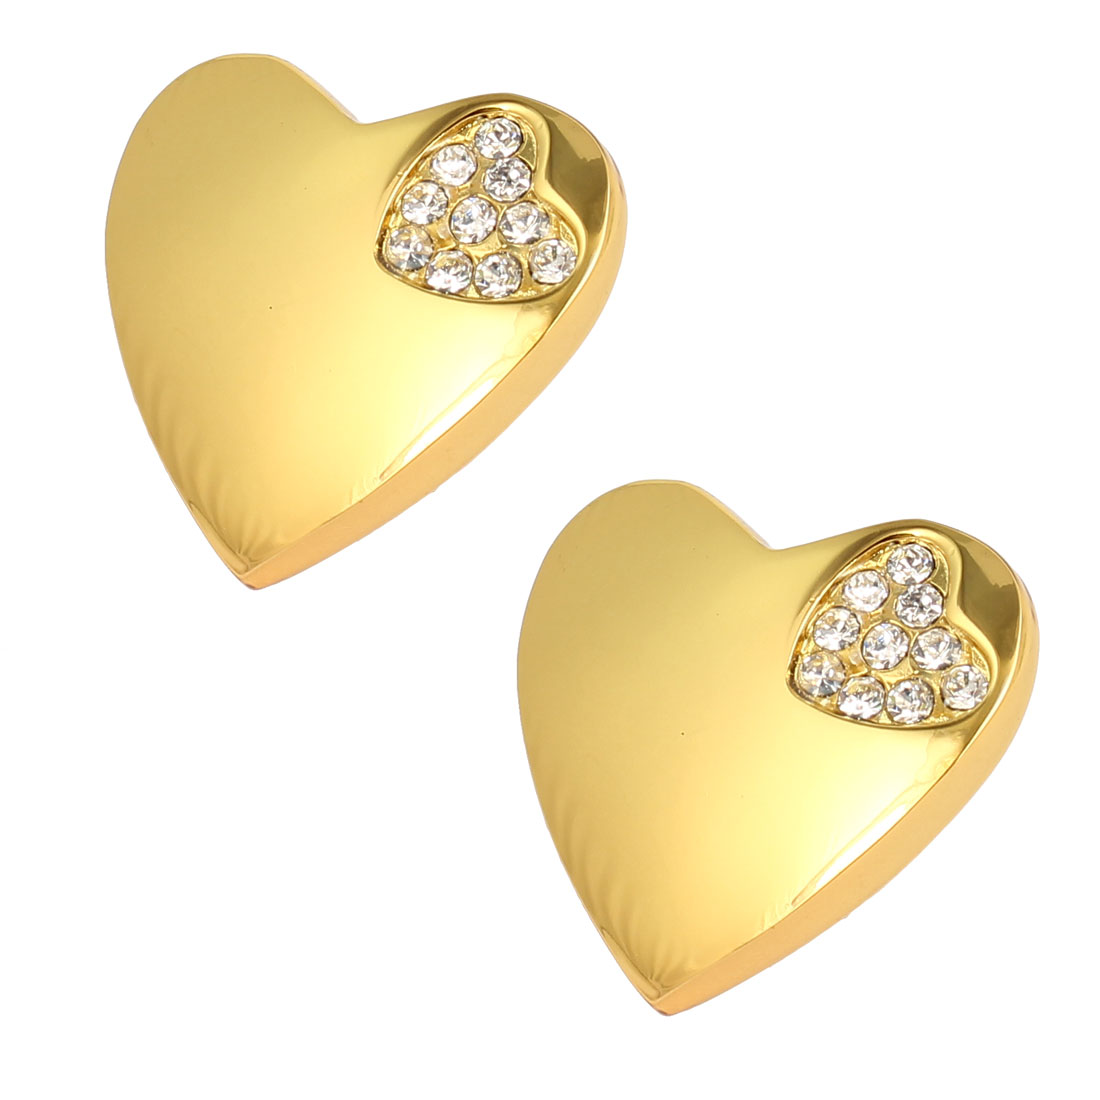 Drawer Dresser Heart Shaped Rhinestone Detail Pull Handle Knob Gold Tone 2pcs